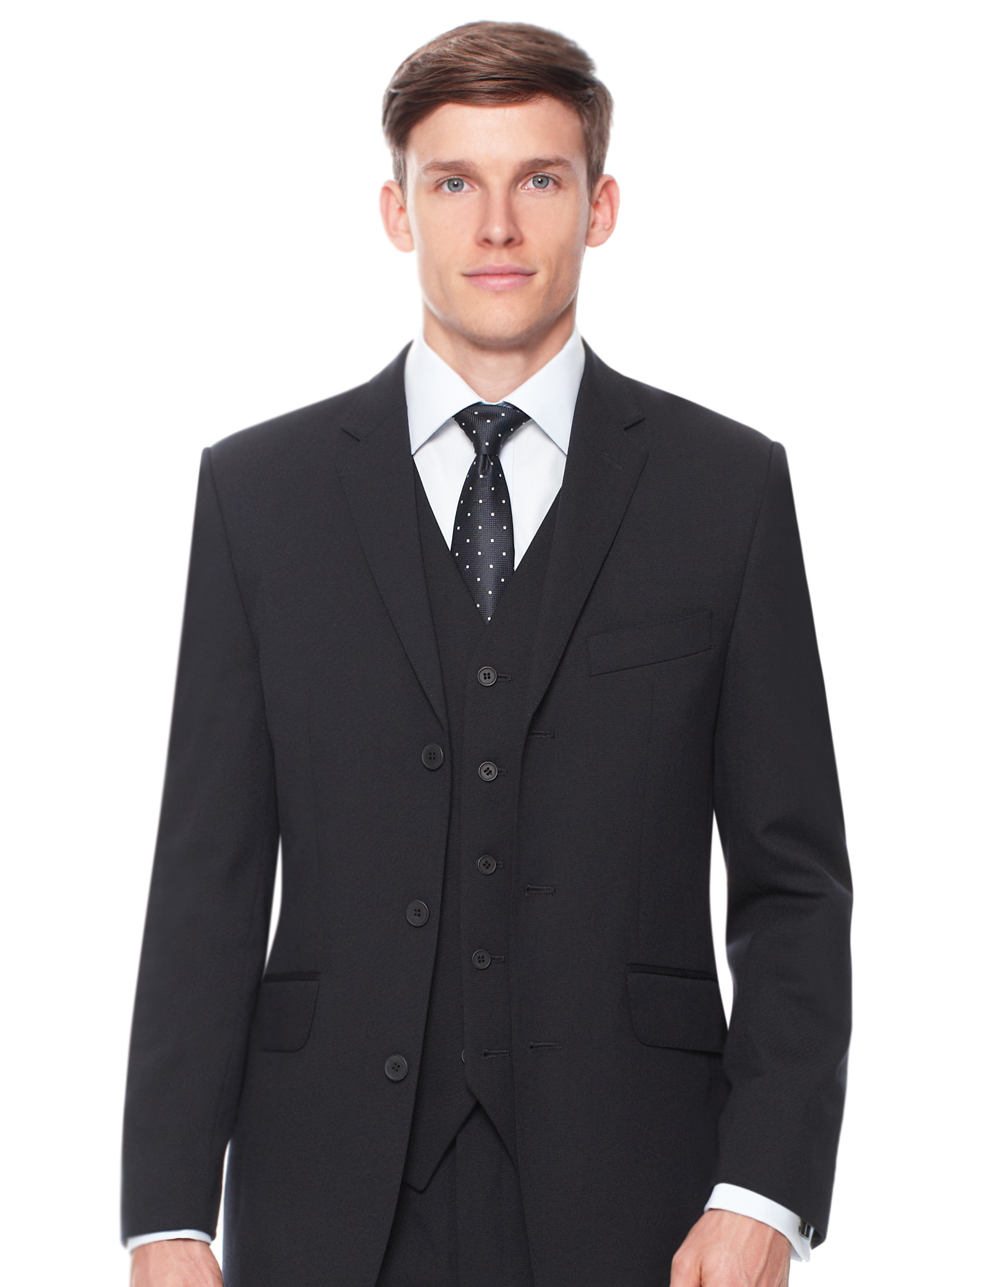 corporate-dressing-uniforms-shop-men.jpg